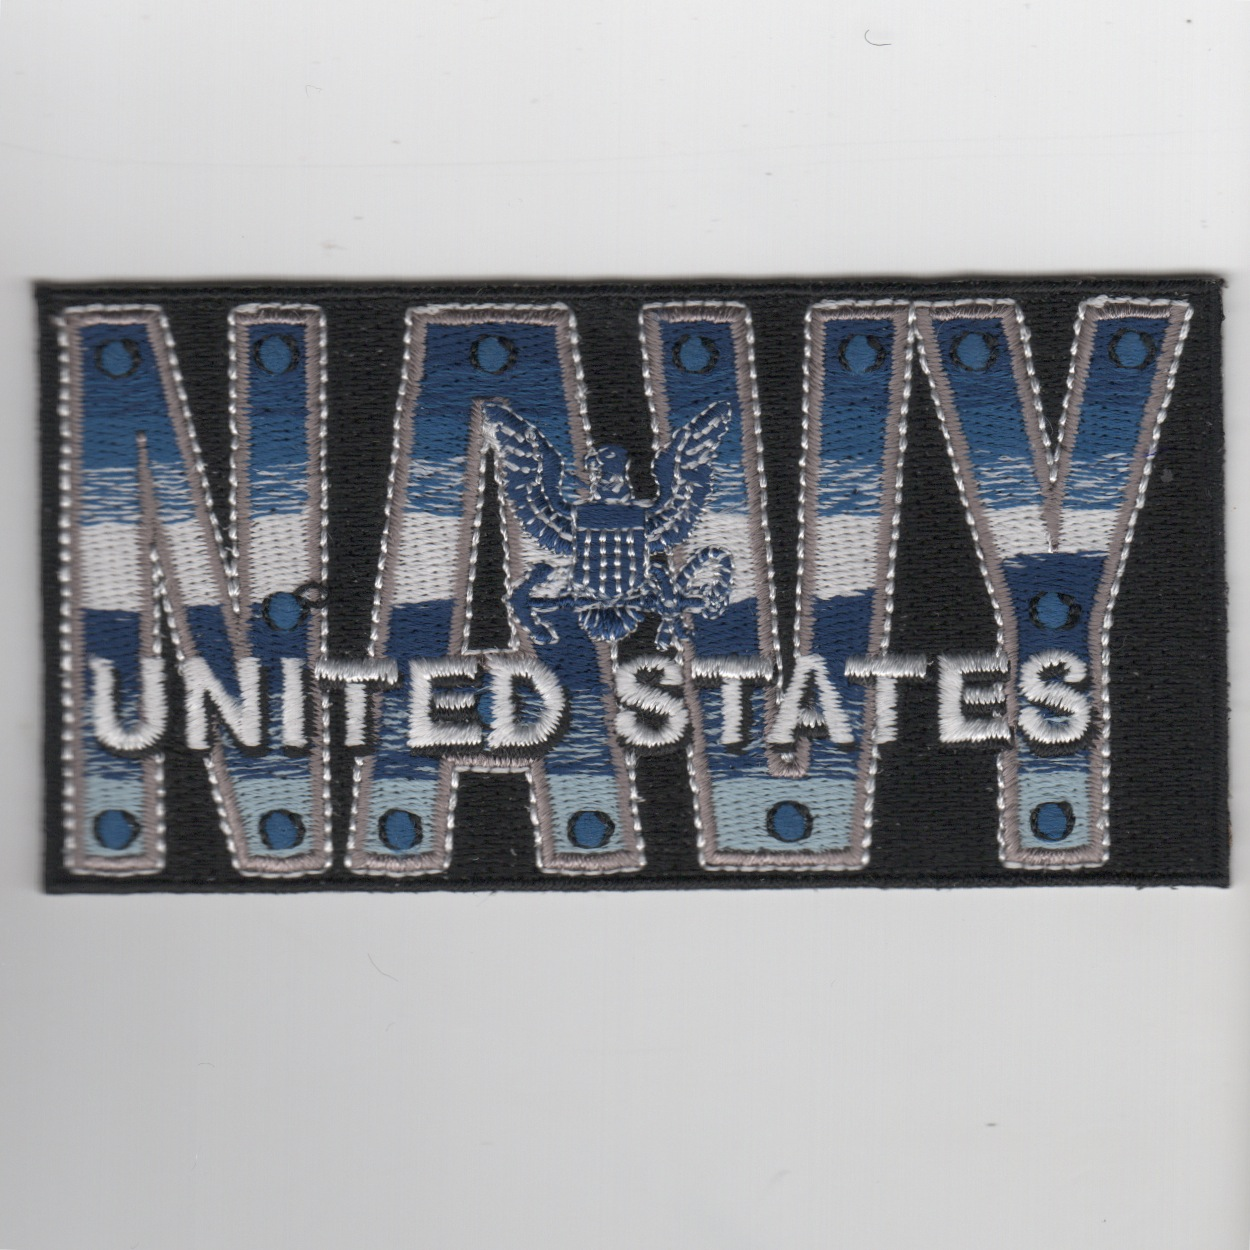 US NAVY (Rect/Black/Blue Letters)